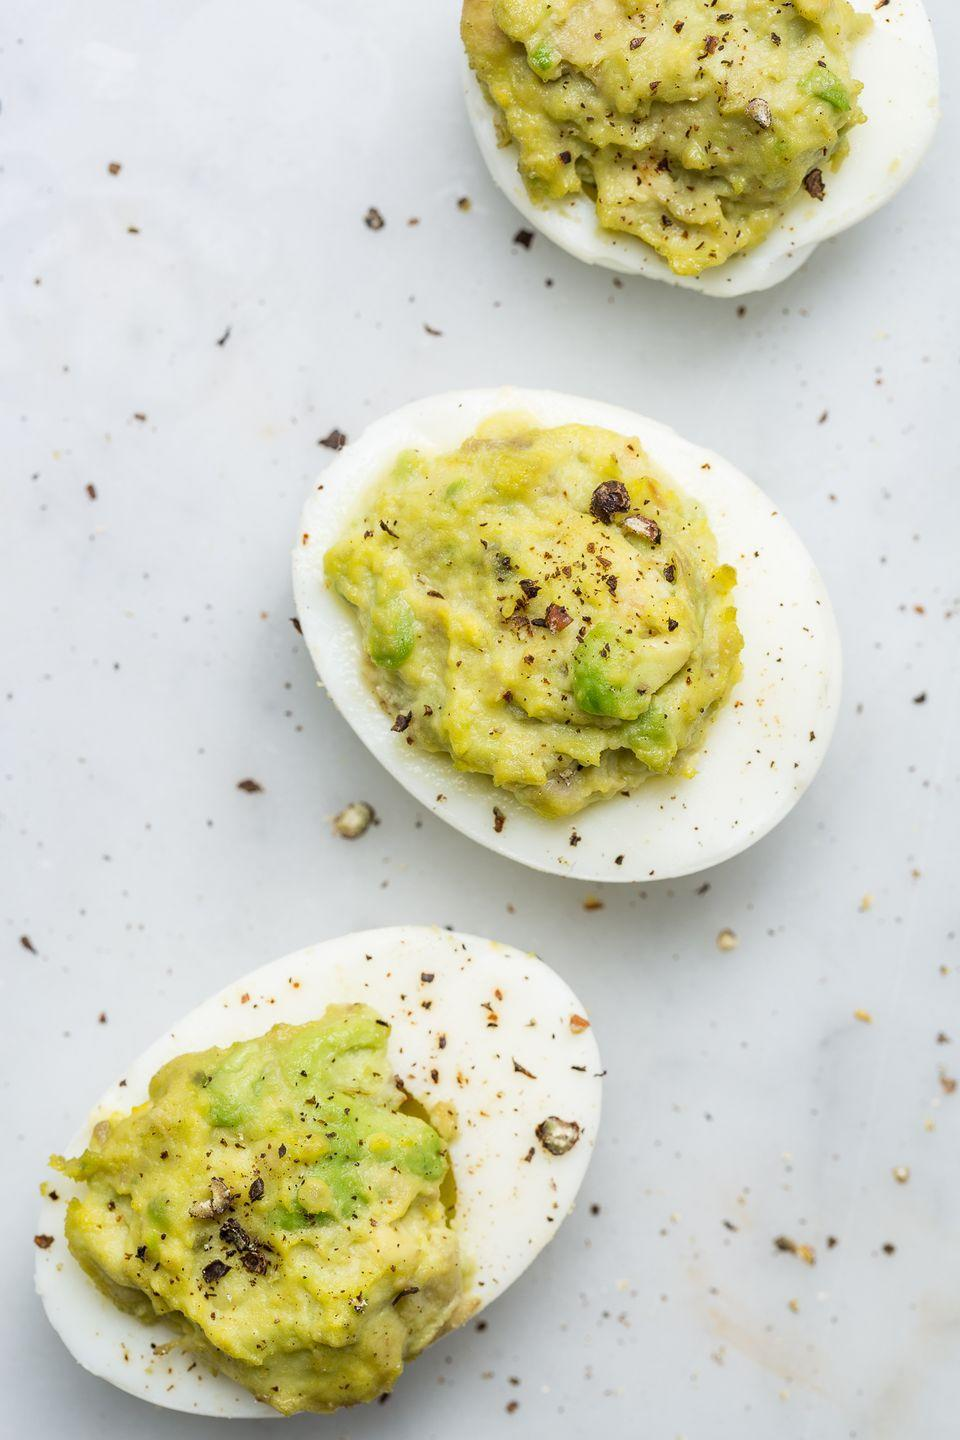 """<p>These guac deviled eggs are the perfect finger food.</p><p>Get the recipe from <a href=""""https://www.delish.com/holiday-recipes/easter/recipes/a58648/best-guacamole-deviled-eggs-recipe/"""" rel=""""nofollow noopener"""" target=""""_blank"""" data-ylk=""""slk:Delish"""" class=""""link rapid-noclick-resp"""">Delish</a>.</p>"""